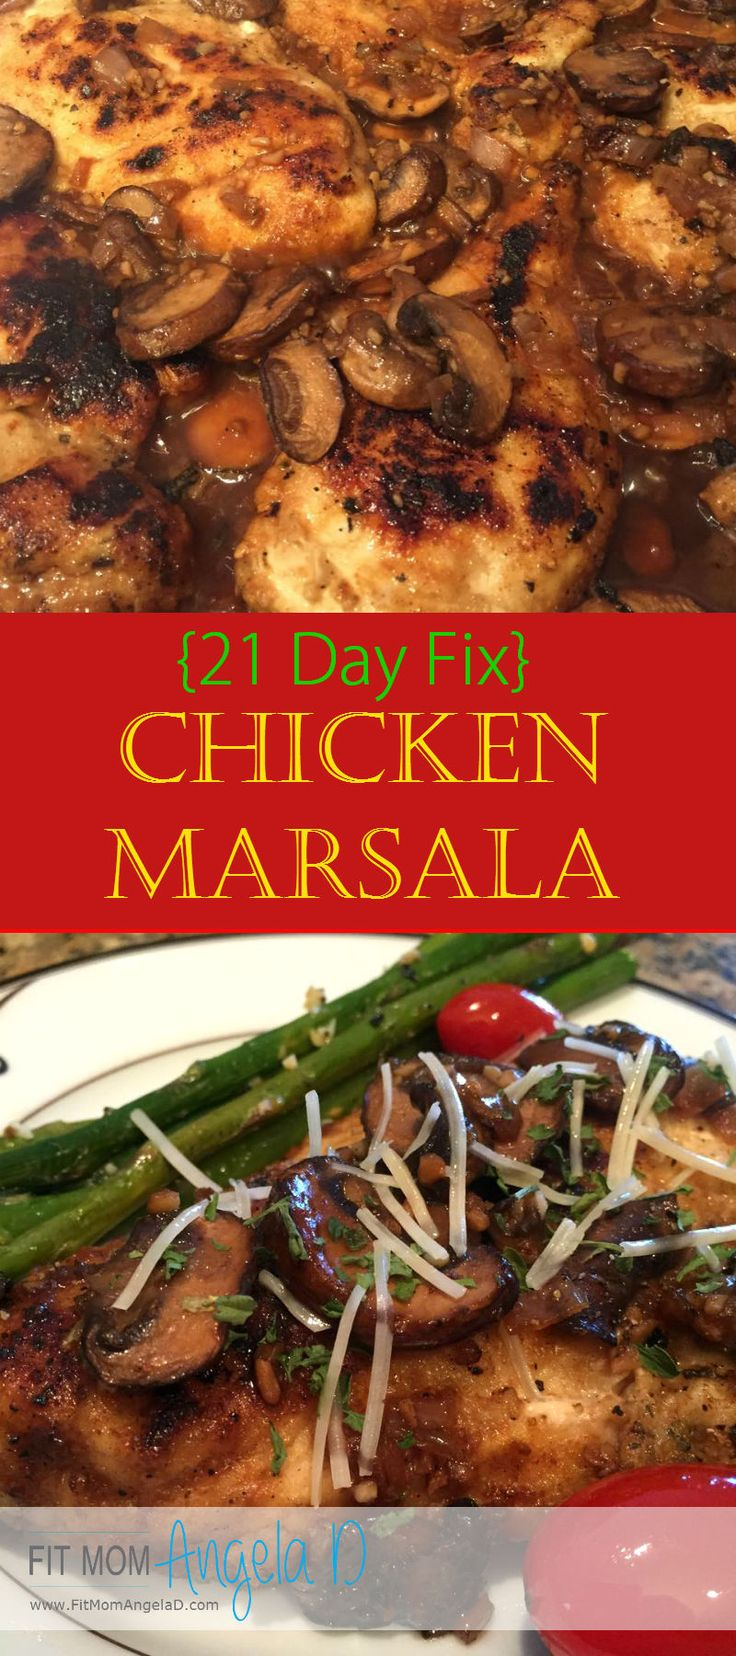 21 Day Fix Chicken Marsala | This meal was SO good - my husband and I both loved it and my house smelled AMAZING! | Healthy Dinner | Clean Eats | 21 Day Fix Approved | www.fitmomangelad.com